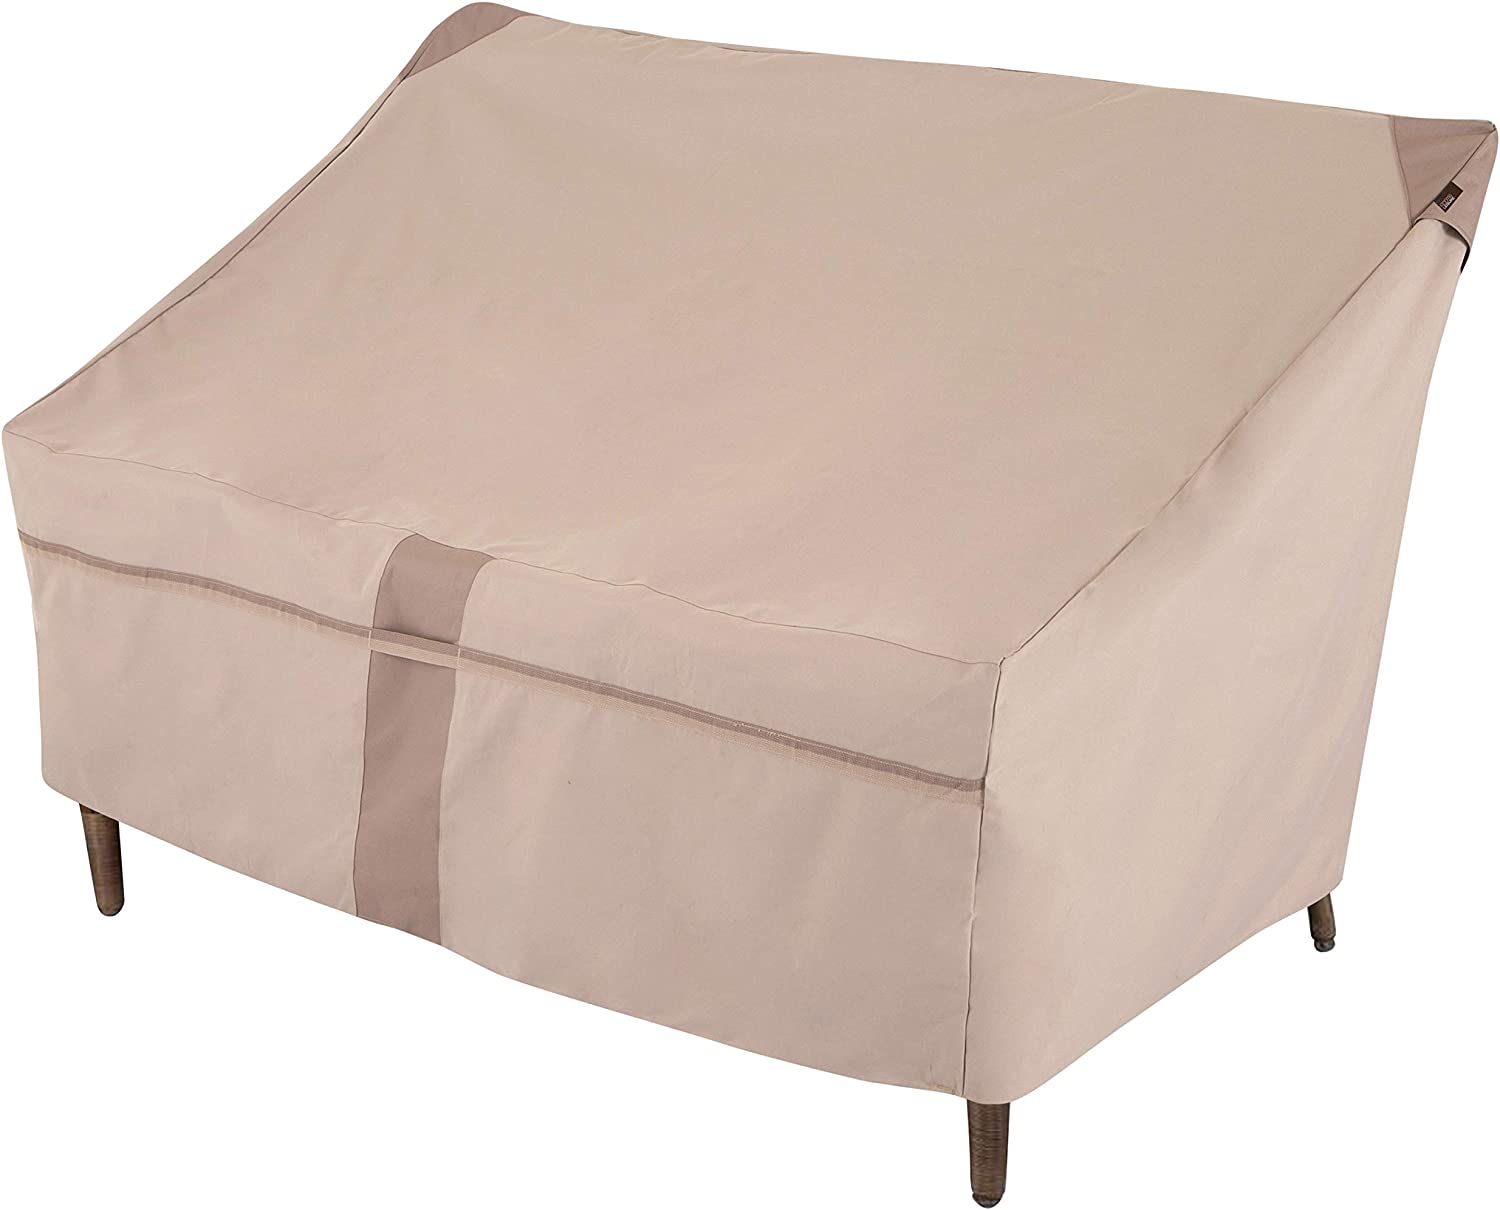 Modern Leisure 2905 Monterey Patio Love Seat, Outdoor Cover (57.5 L D x 38 H inches) Water-Resistant, Small, Khaki/Fossil